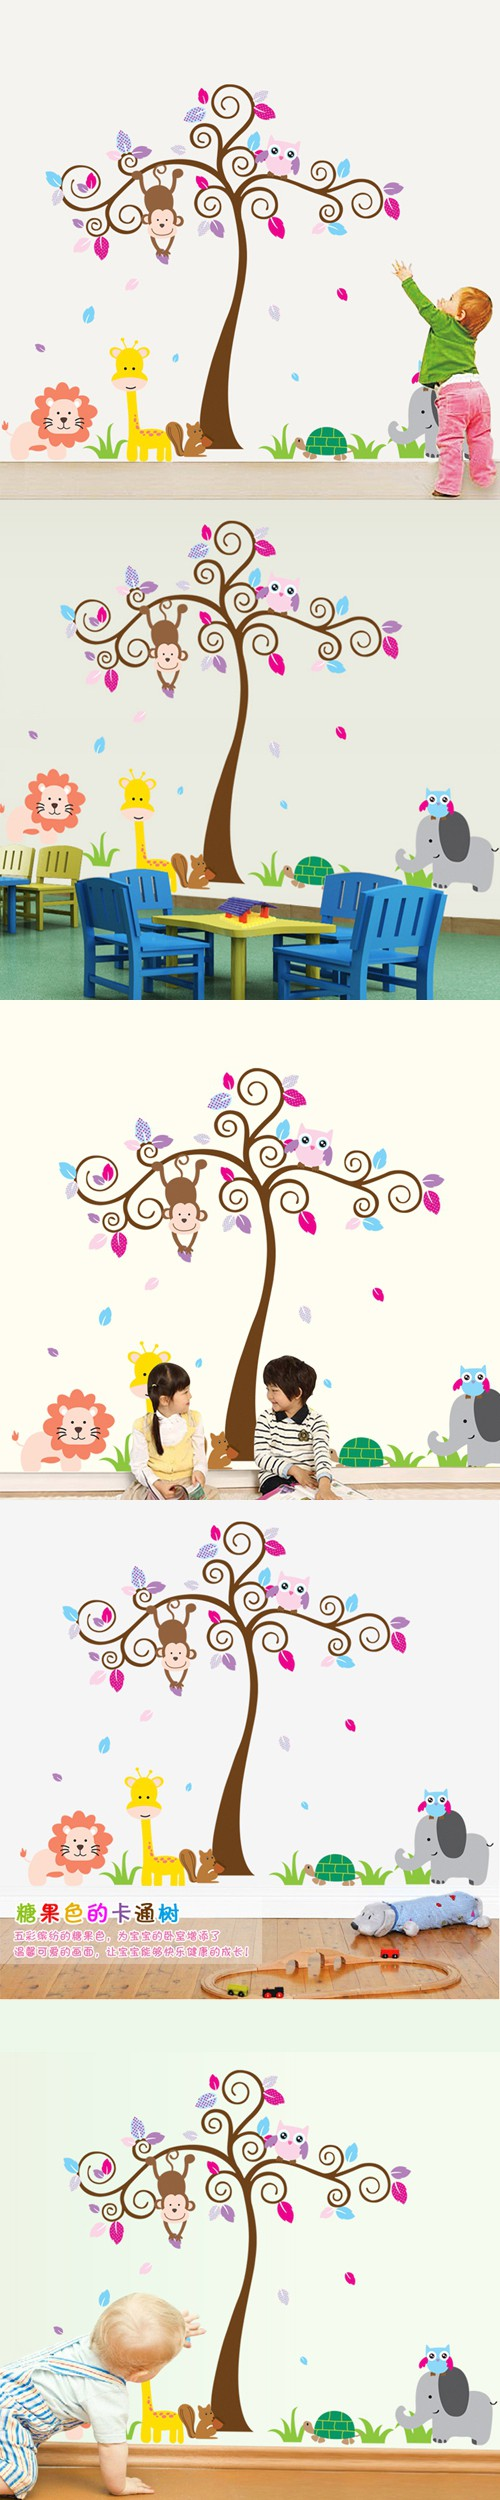 1 set 58*75 inch Removable PVC Decals Cartoon Tree With Cute Owl Giraffe Monkey Animals Kids Bedroom Decoration Wall Stickers